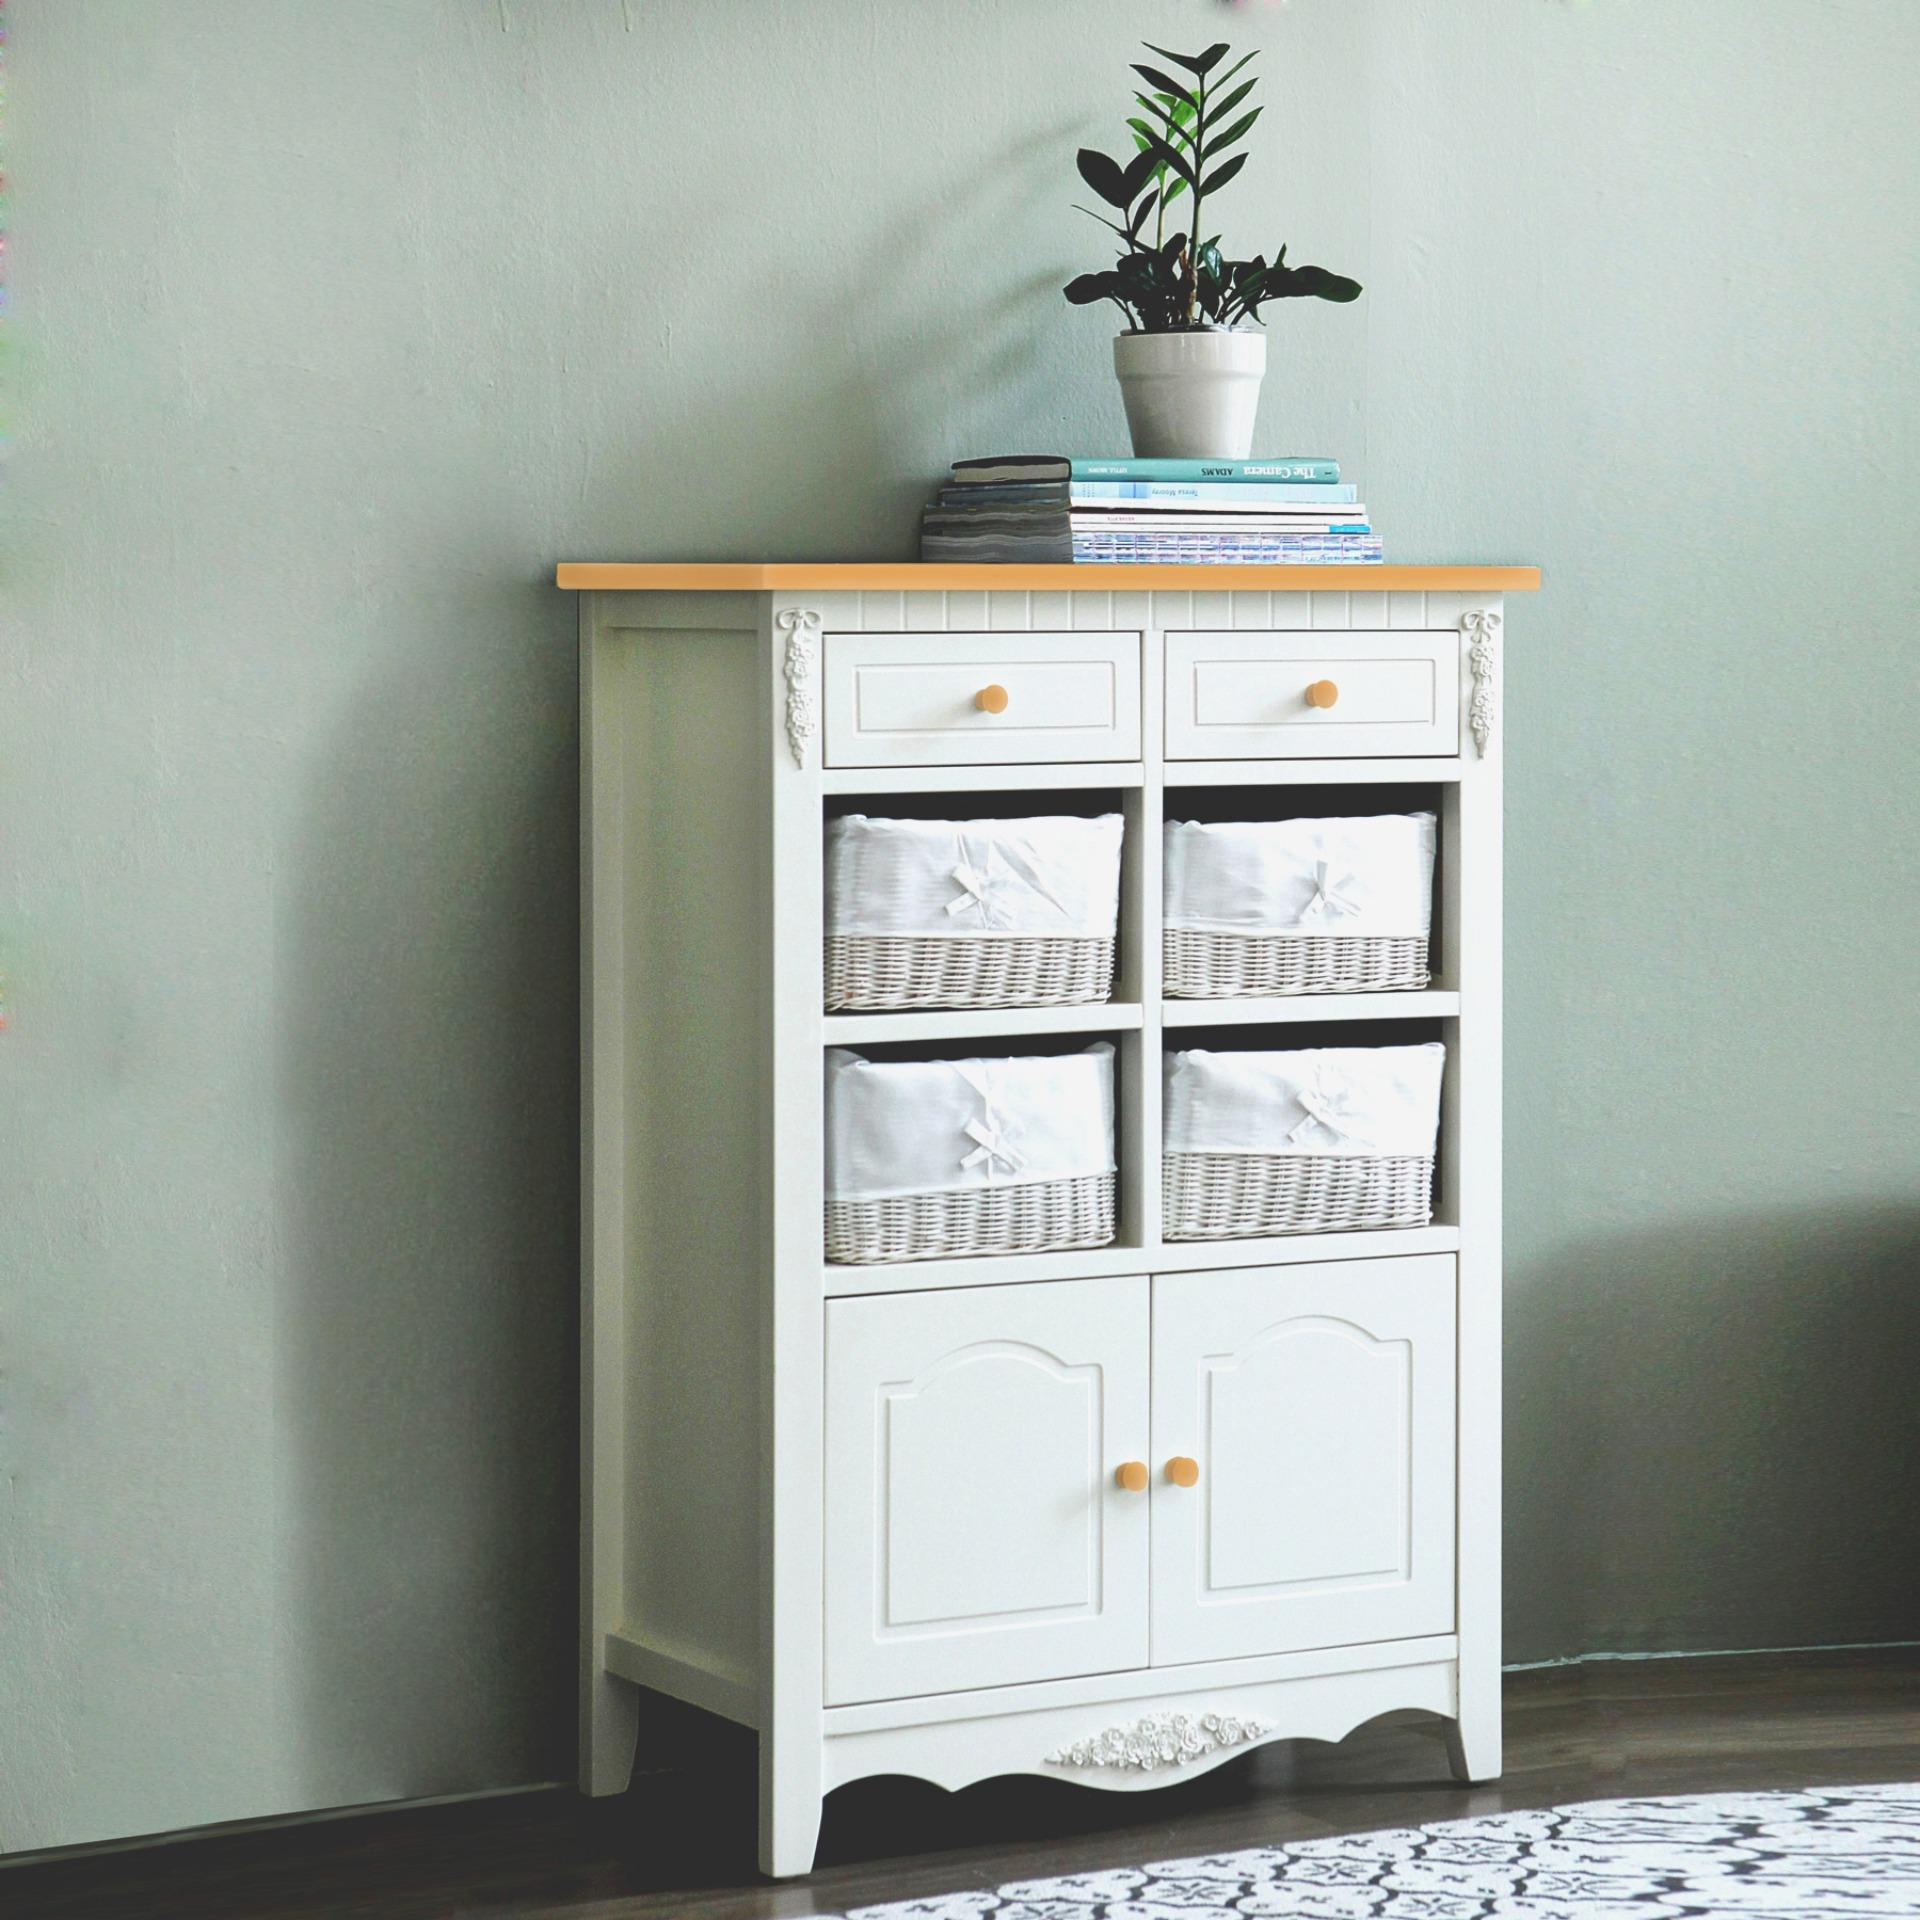 Diskon The Olive House Lemari Kabinet Jasmine 8 Drawers Top Oak Akhir Tahun